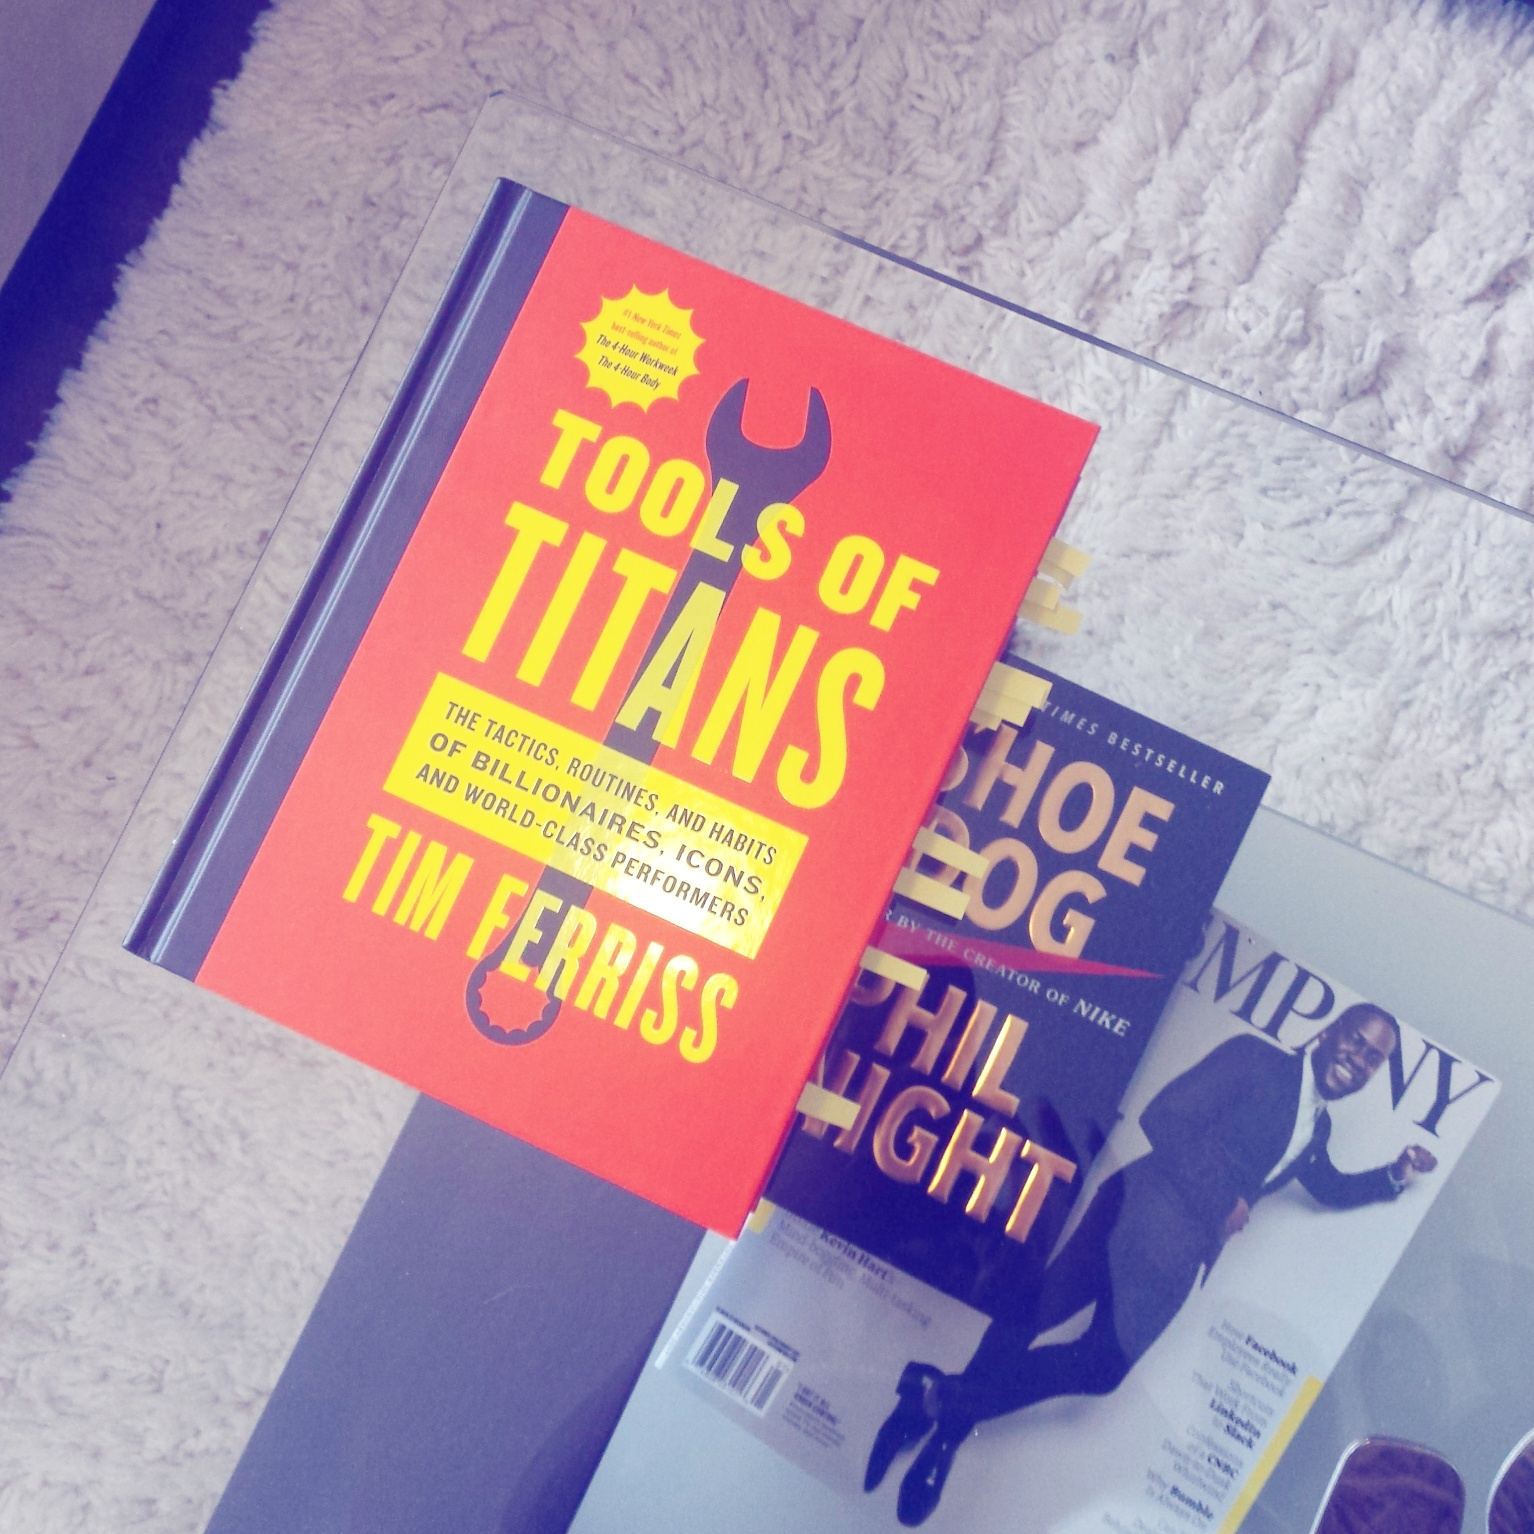 BOOKS: Tools of Titans By – Tim Ferriss